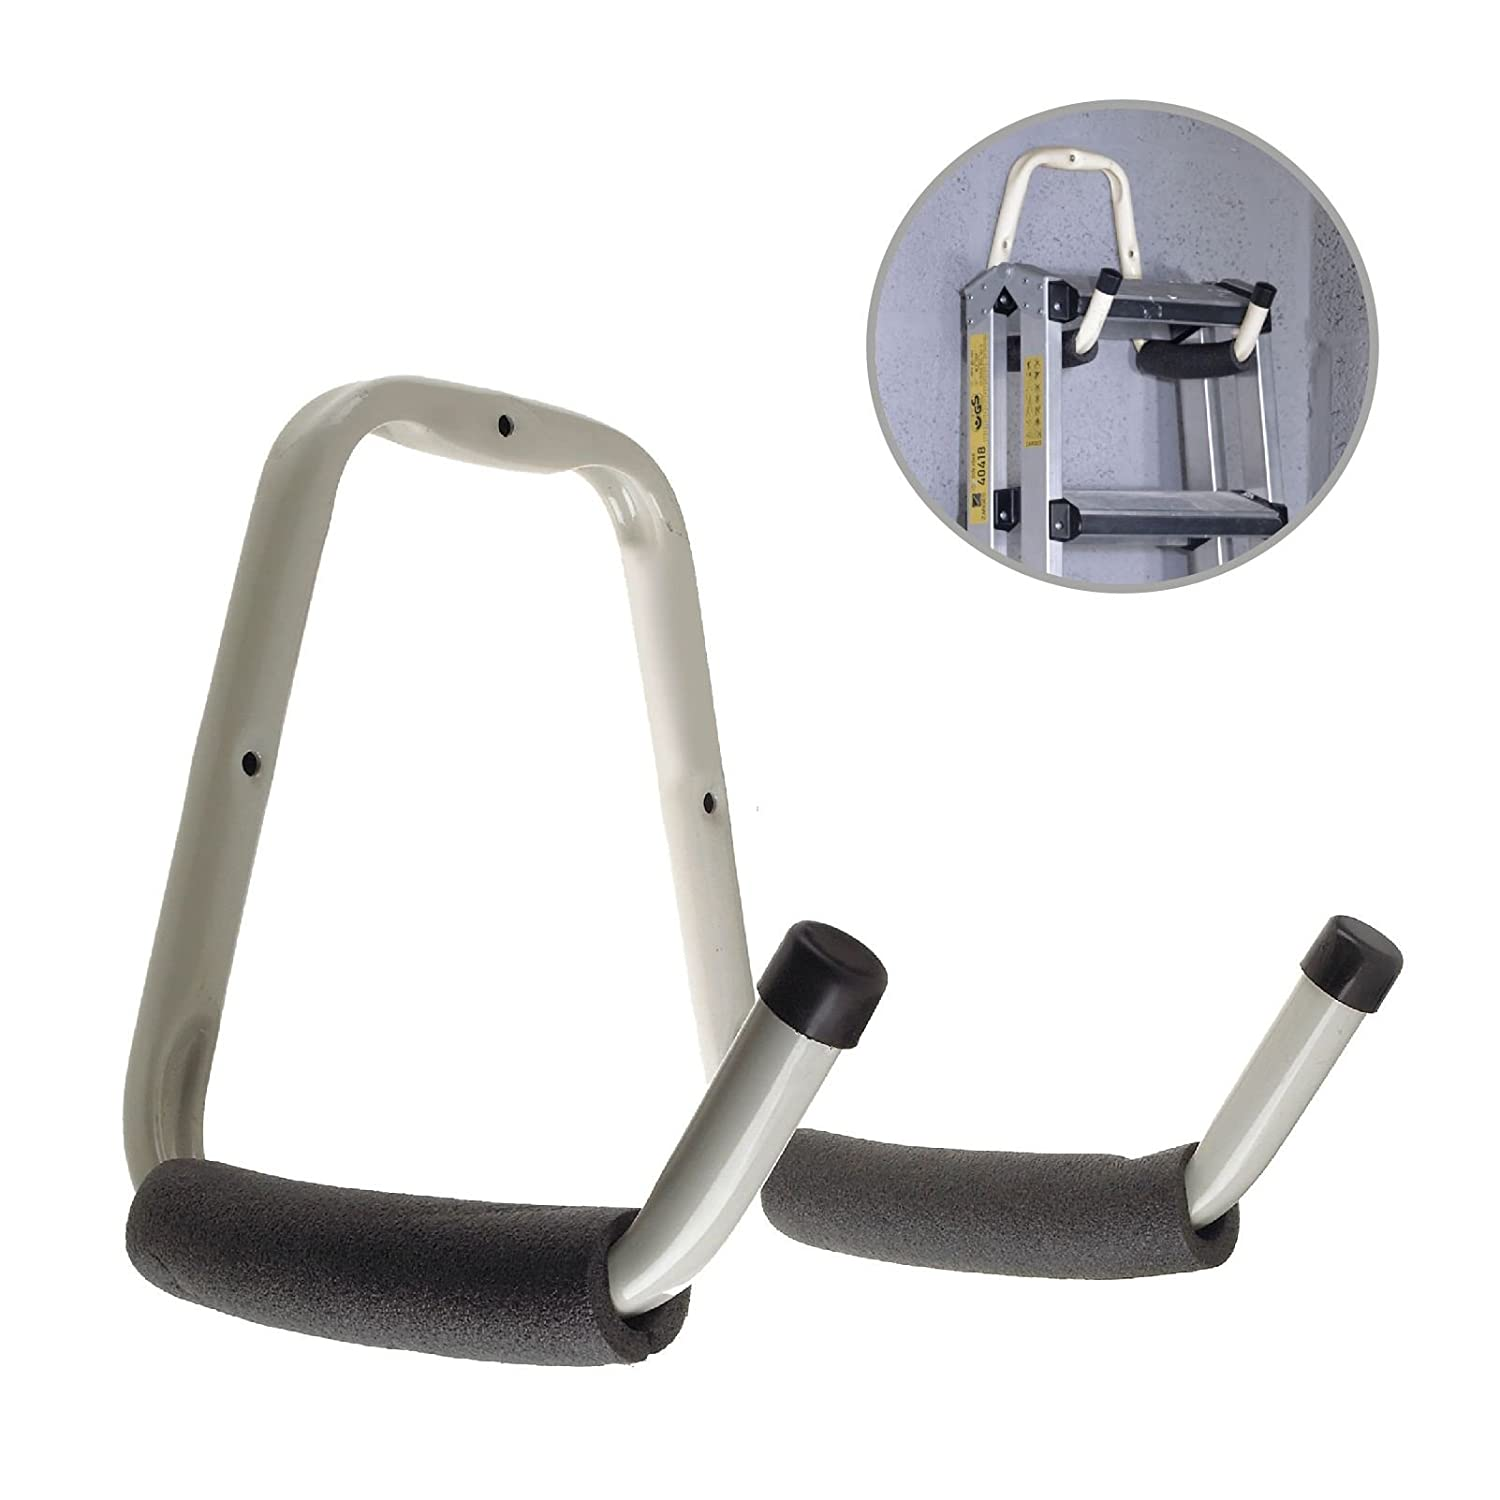 Heavy Duty Double Padded Storage Hook for Bikes, Garages, Sheds, Ladders & Tools Home.smart